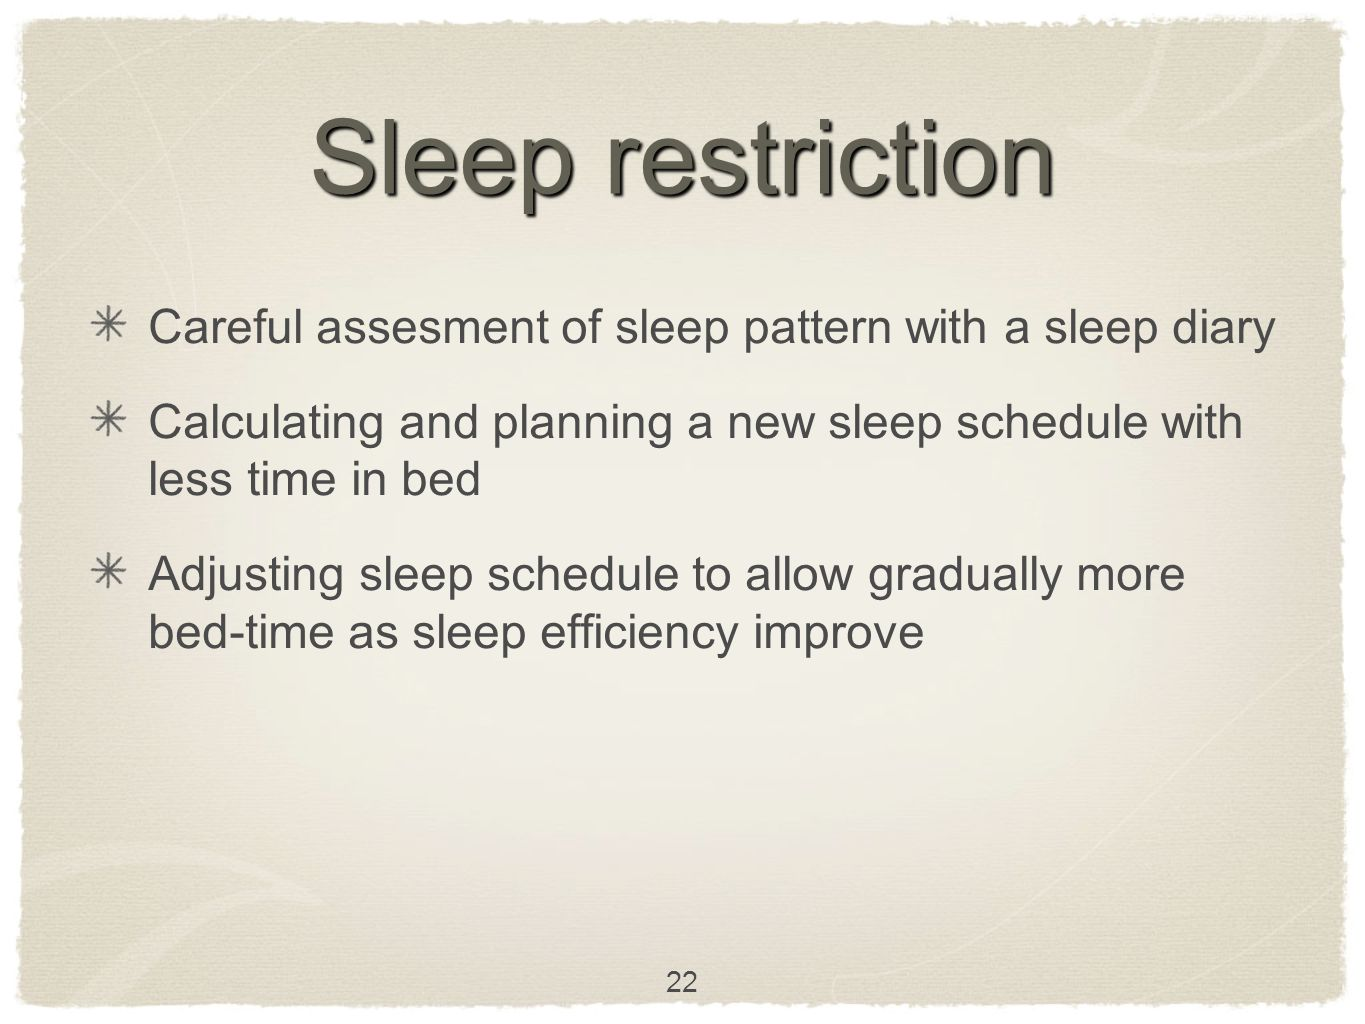 Sleep restriction Careful assesment of sleep pattern with a sleep diary Calculating and planning a new sleep schedule with less time in bed Adjusting sleep schedule to allow gradually more bed-time as sleep efficiency improve 22